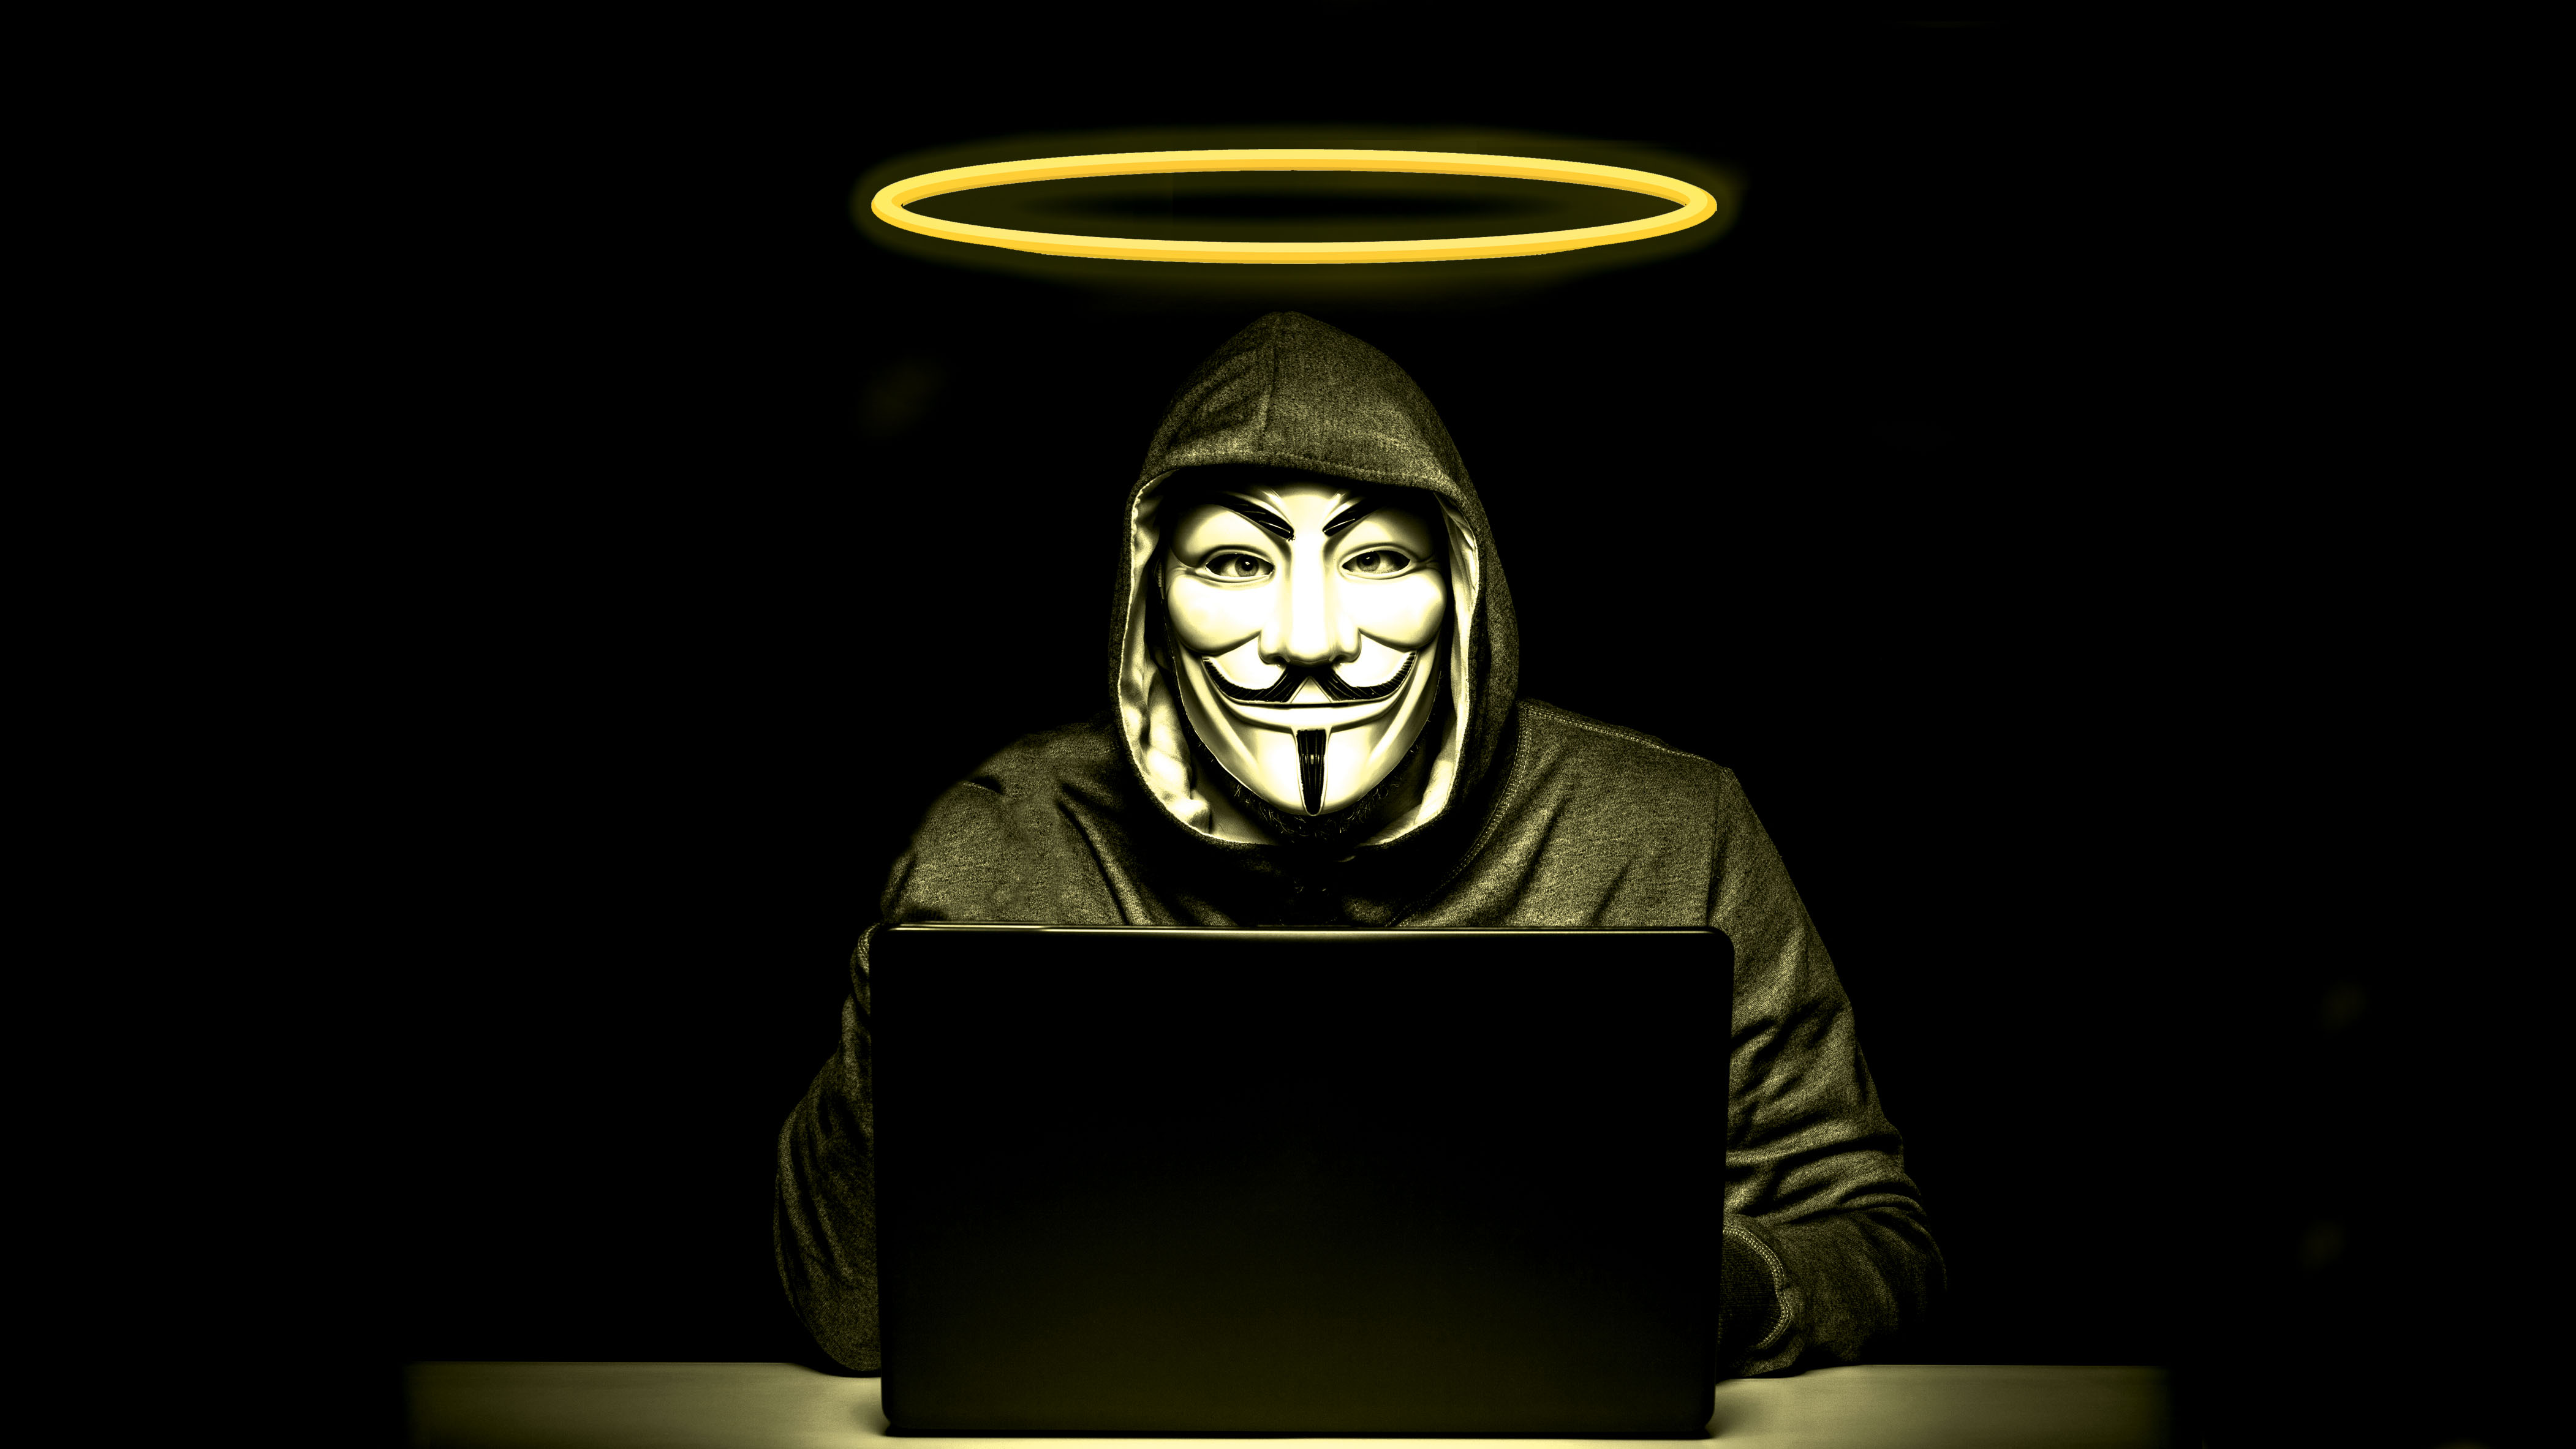 #EndSARS: Hack Group Anonymous Allegedly Hacks GTBank, Credit Users Accounts